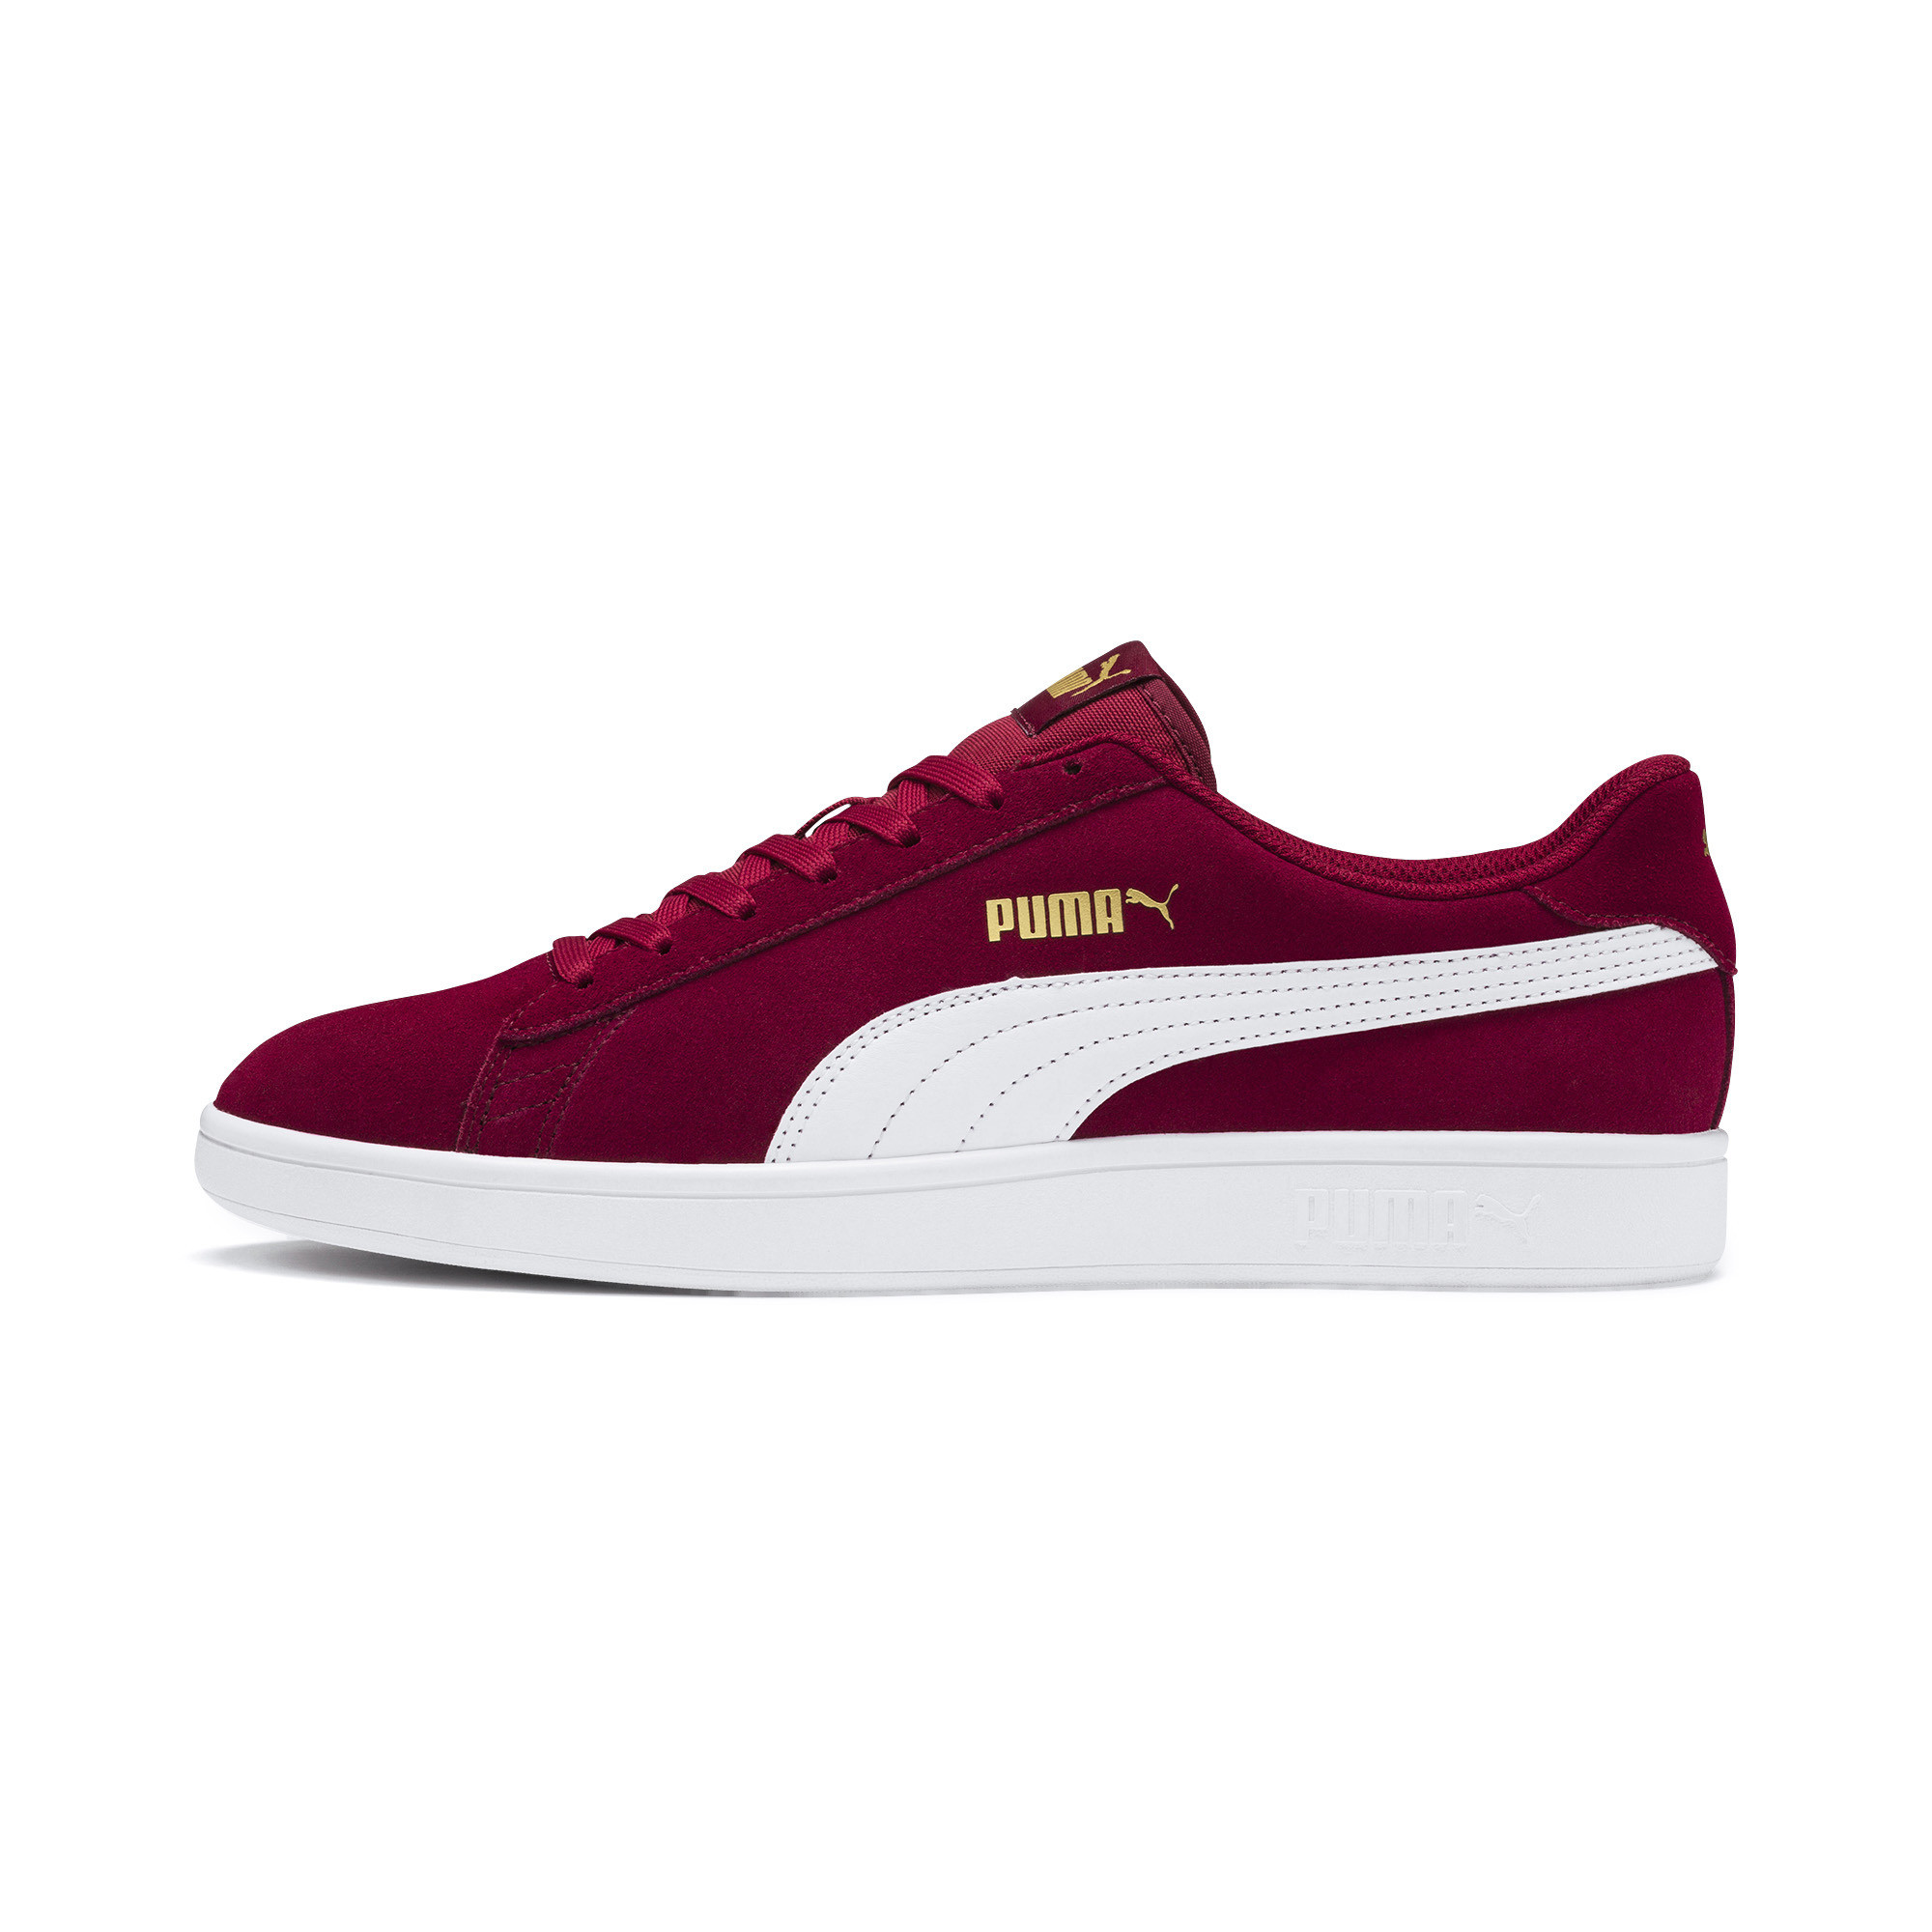 PUMA-PUMA-Smash-v2-Men-039-s-Sneakers-Men-Shoe-Basics thumbnail 47